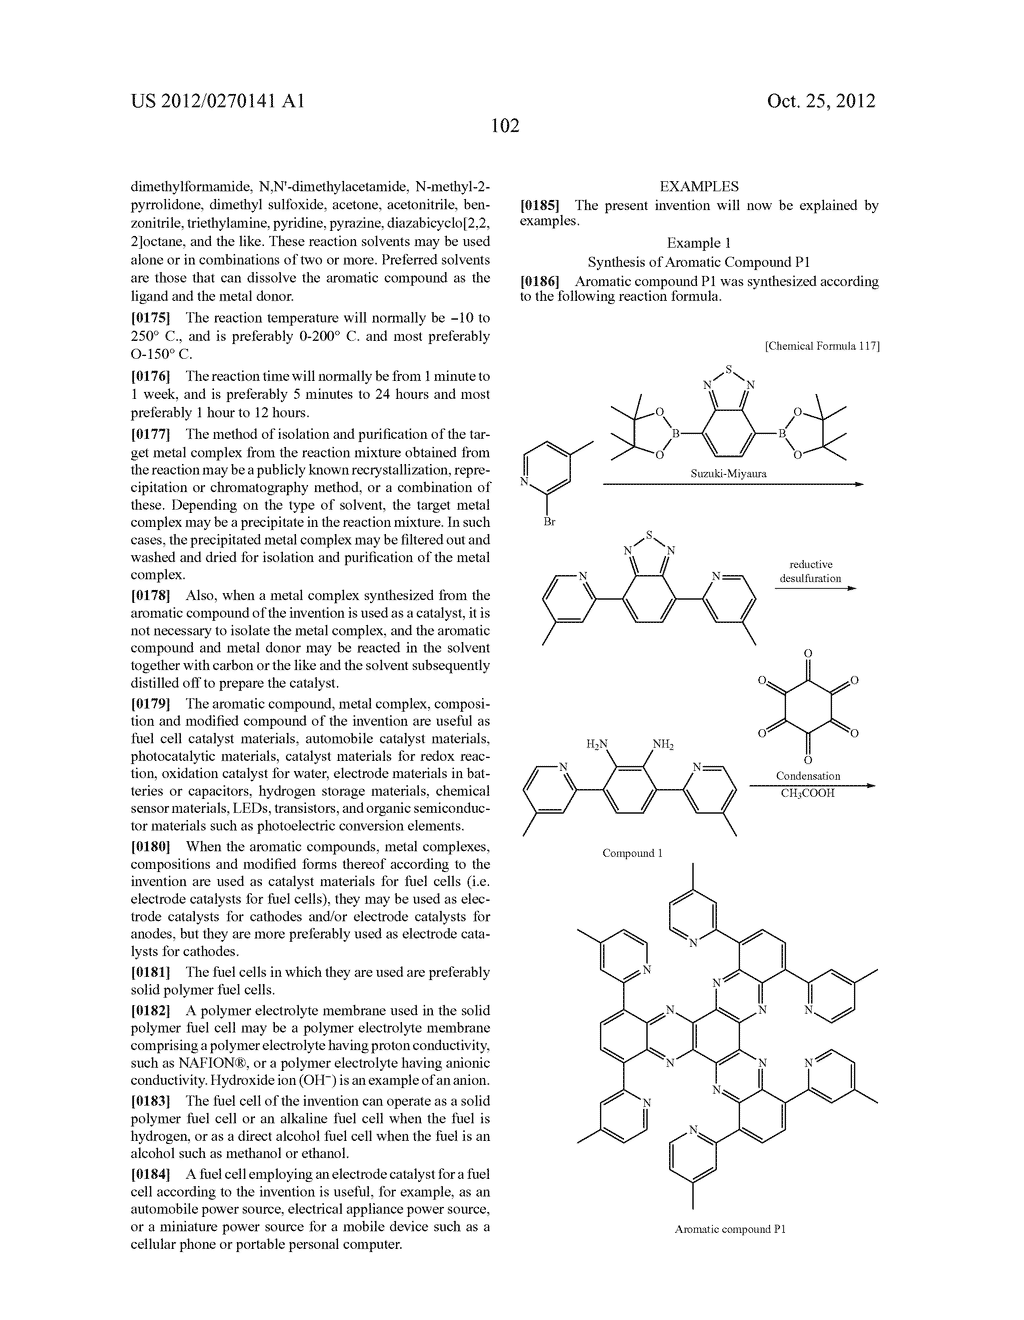 NITROGEN-CONTAINING AROMATIC COMPOUNDS AND METAL COMPLEXES - diagram, schematic, and image 103